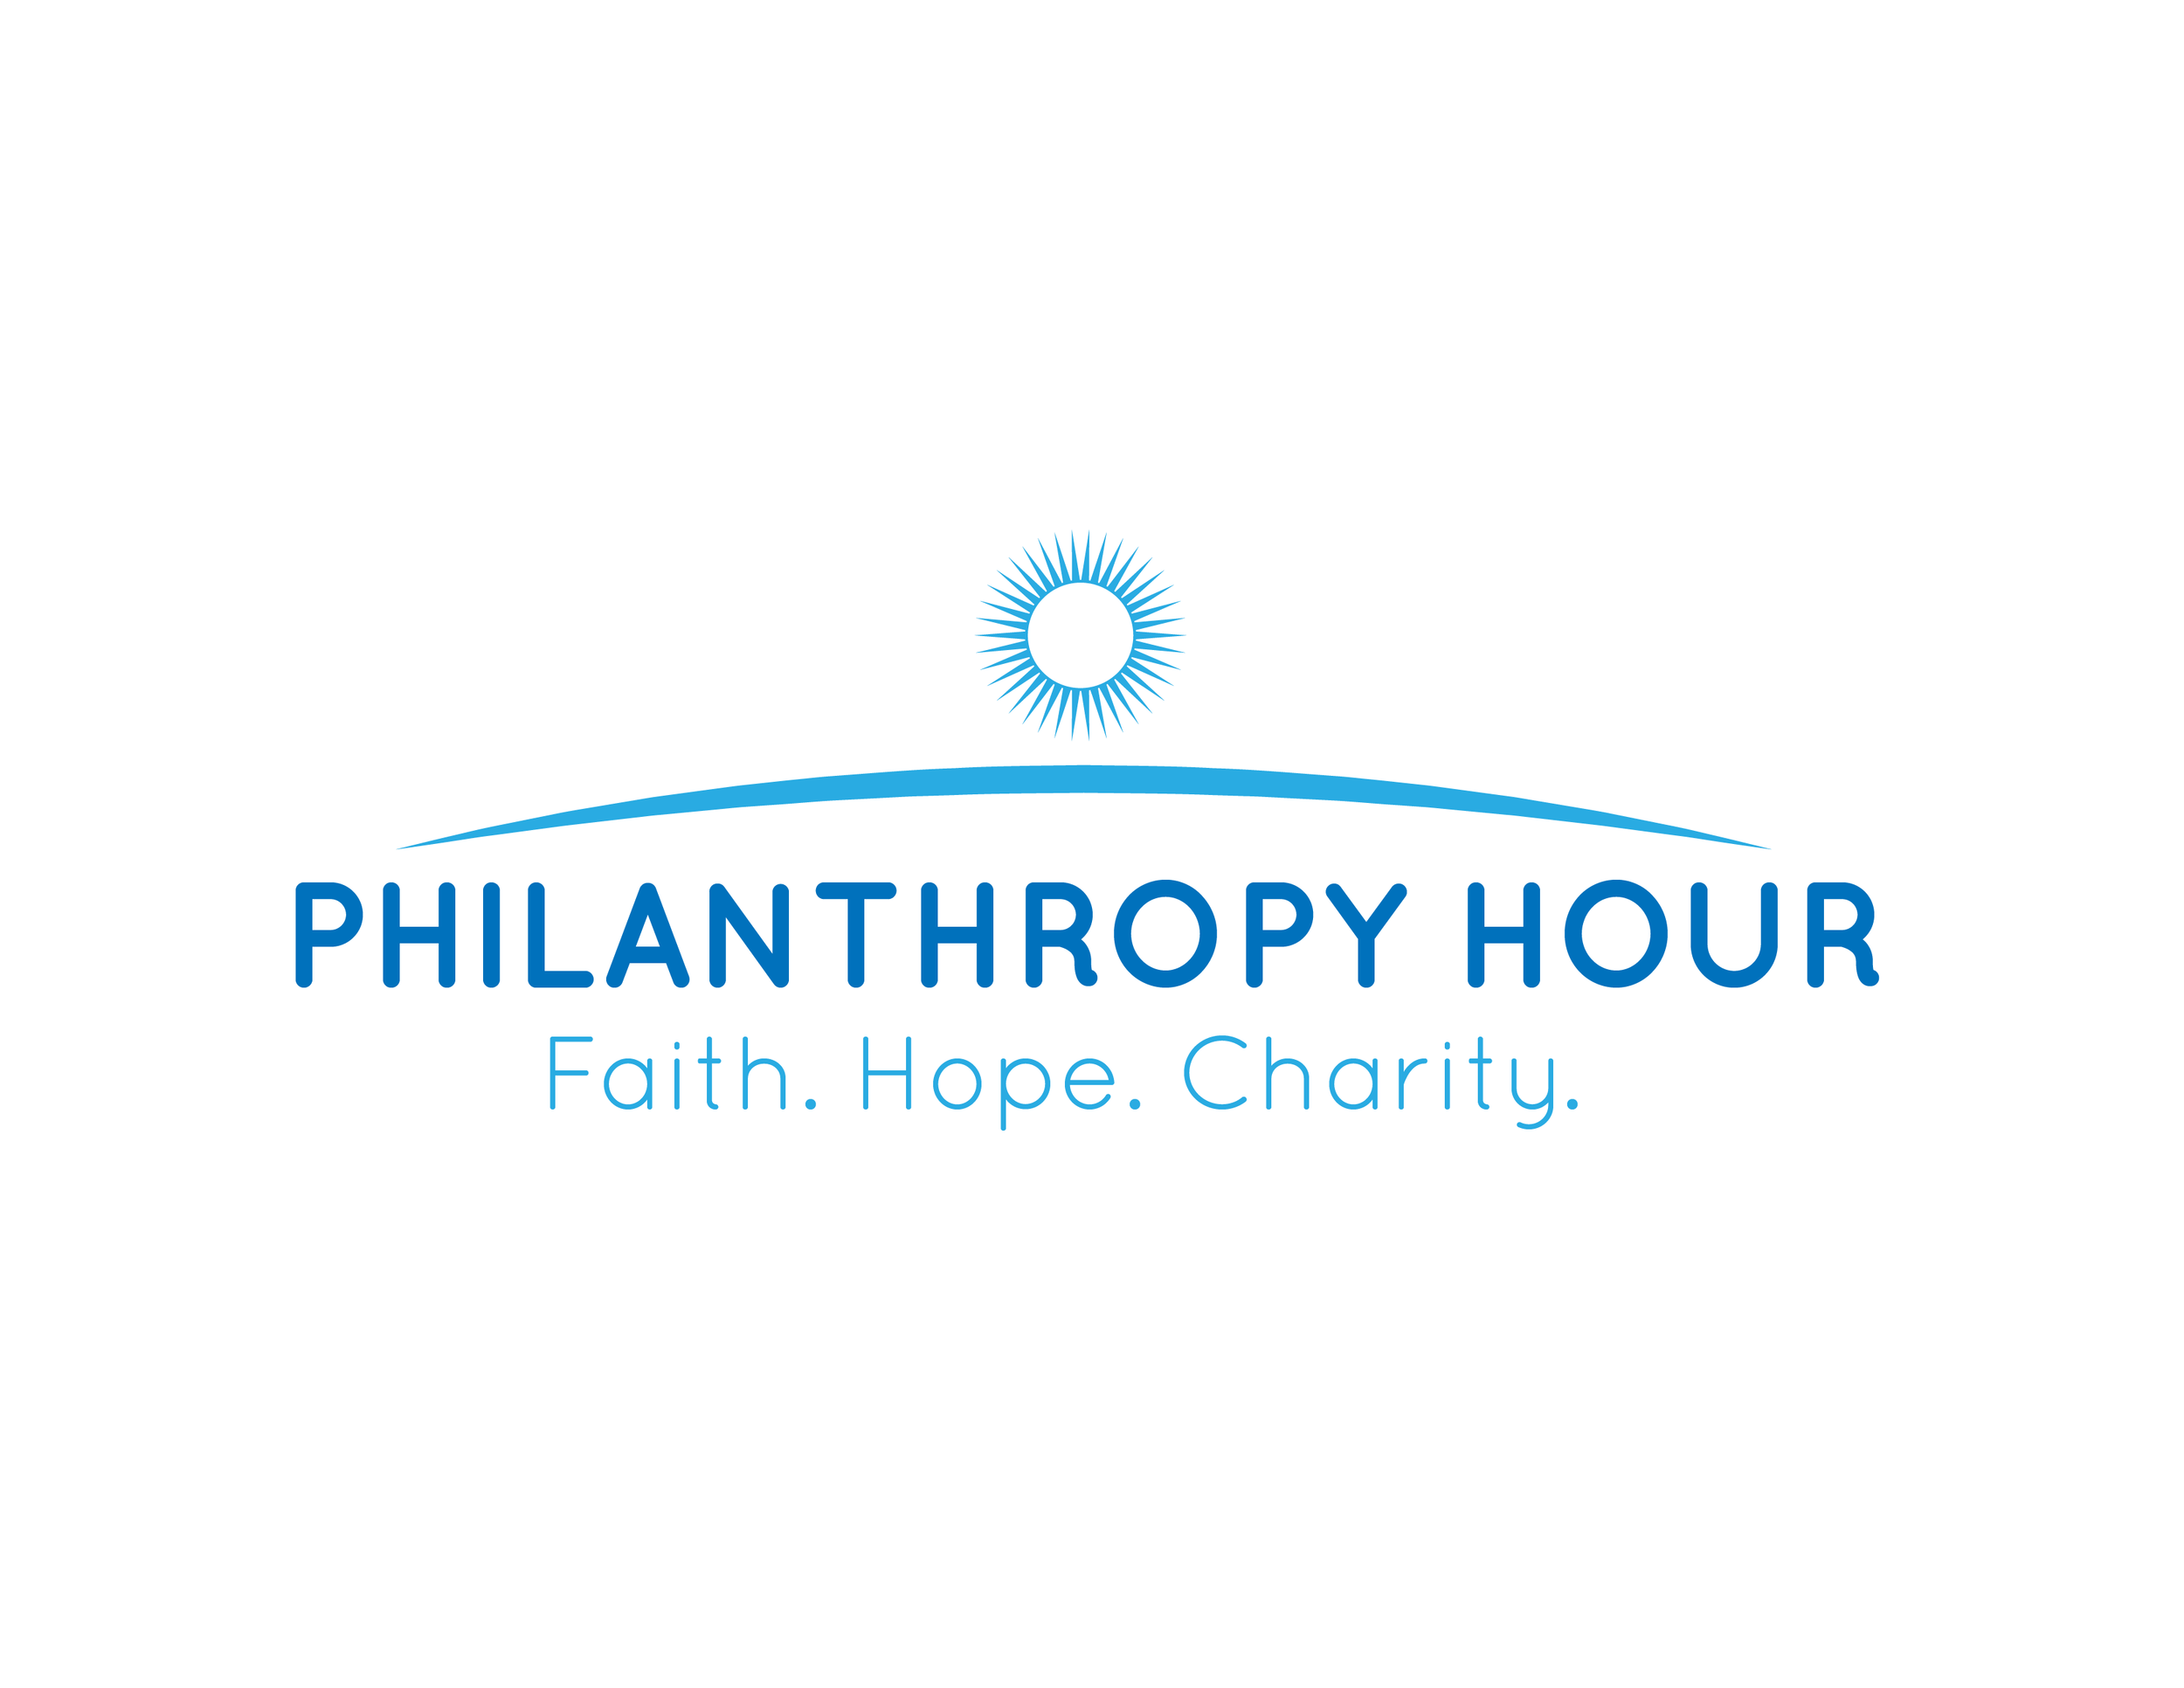 Philanthropy_Hour02 (1).png